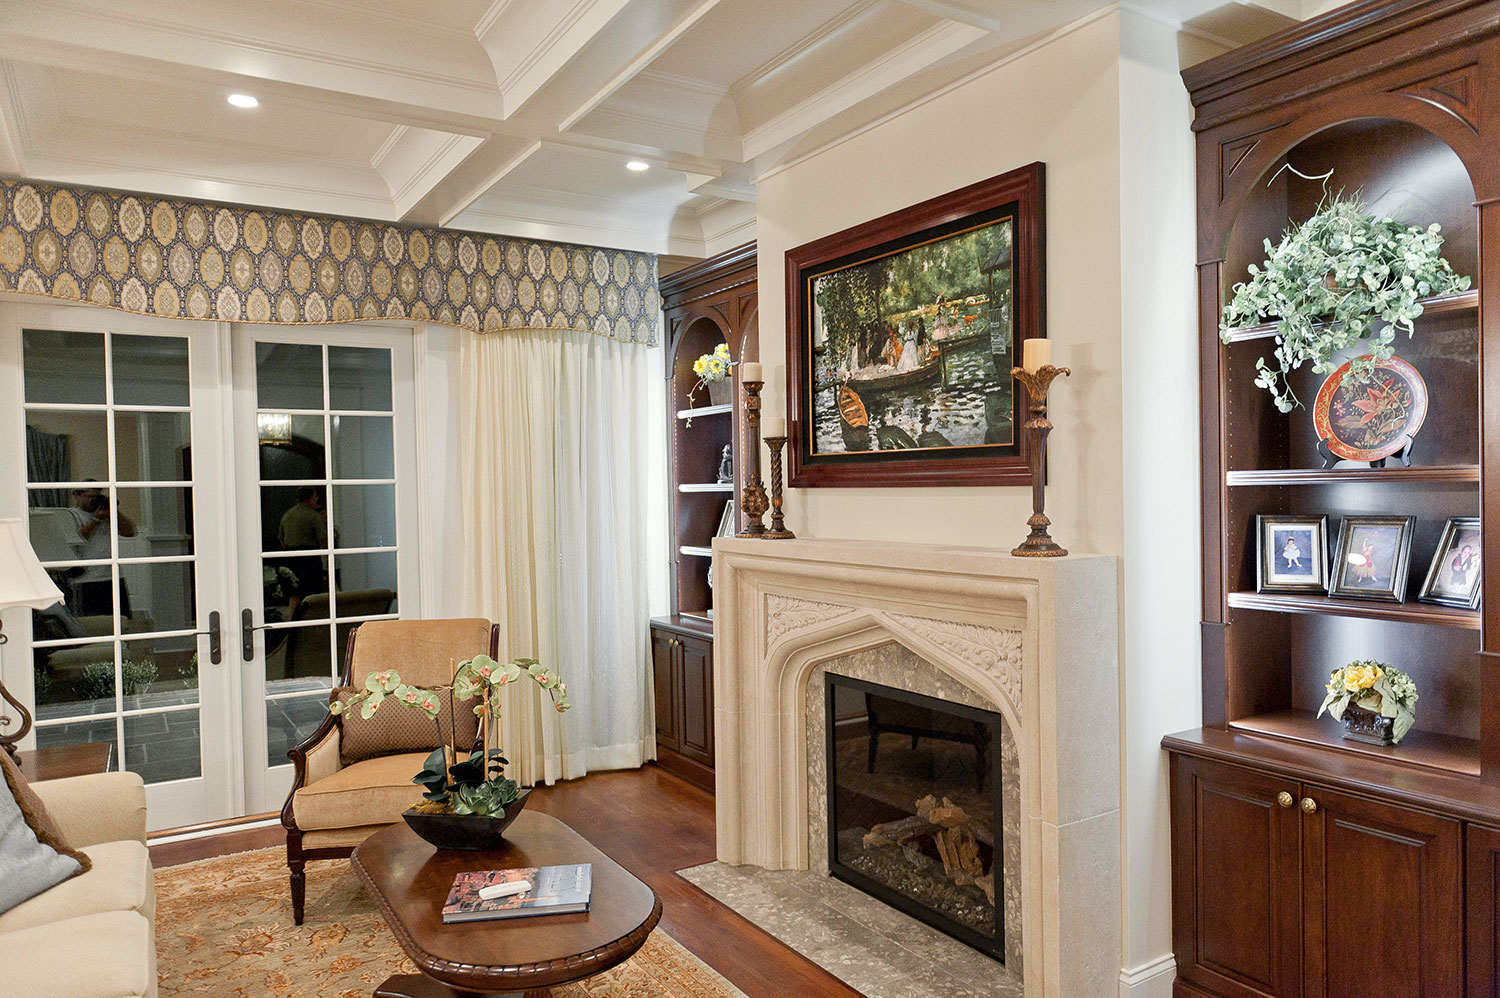 carved-stone-fireplace-formal-living-room